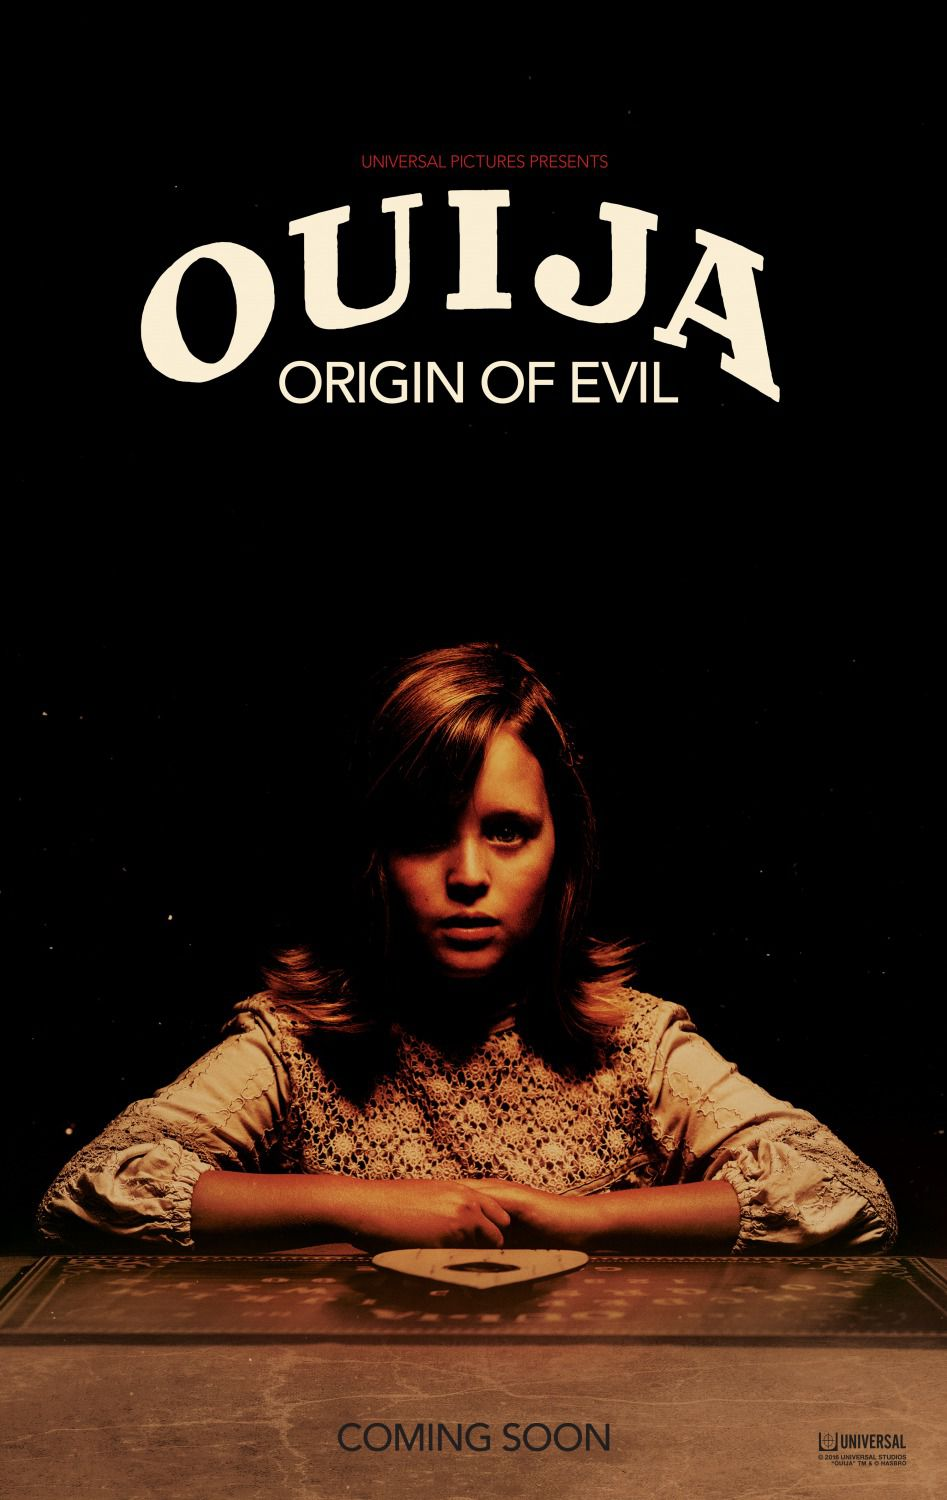 Ouija 2 Origin of Evil - Origine del Male (2016)